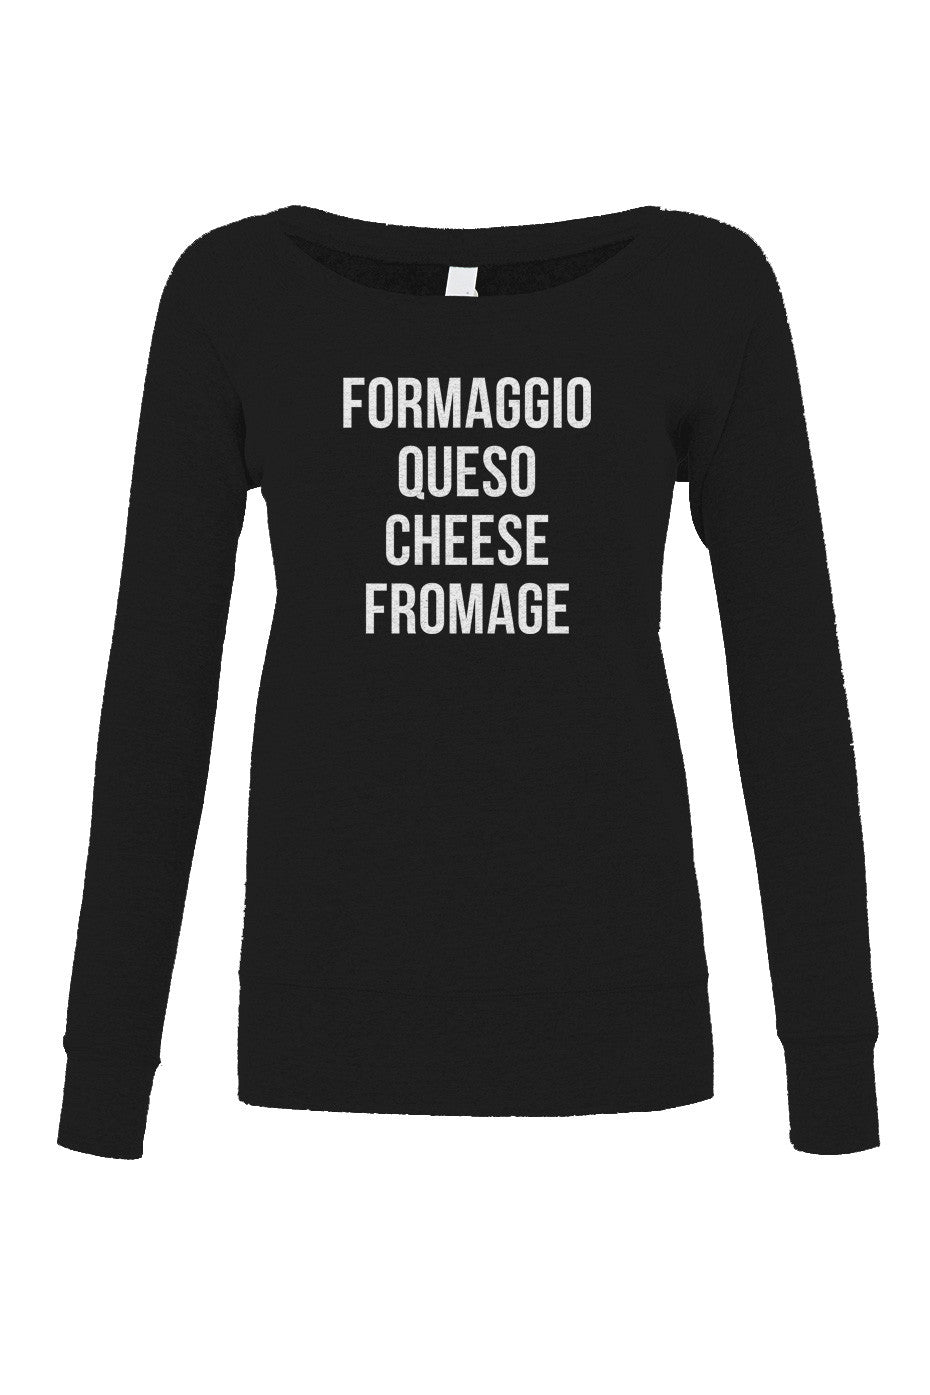 Women's Formaggio Queso Cheese Fromage Scoop Neck Fleece - Cheese Lover Shirt